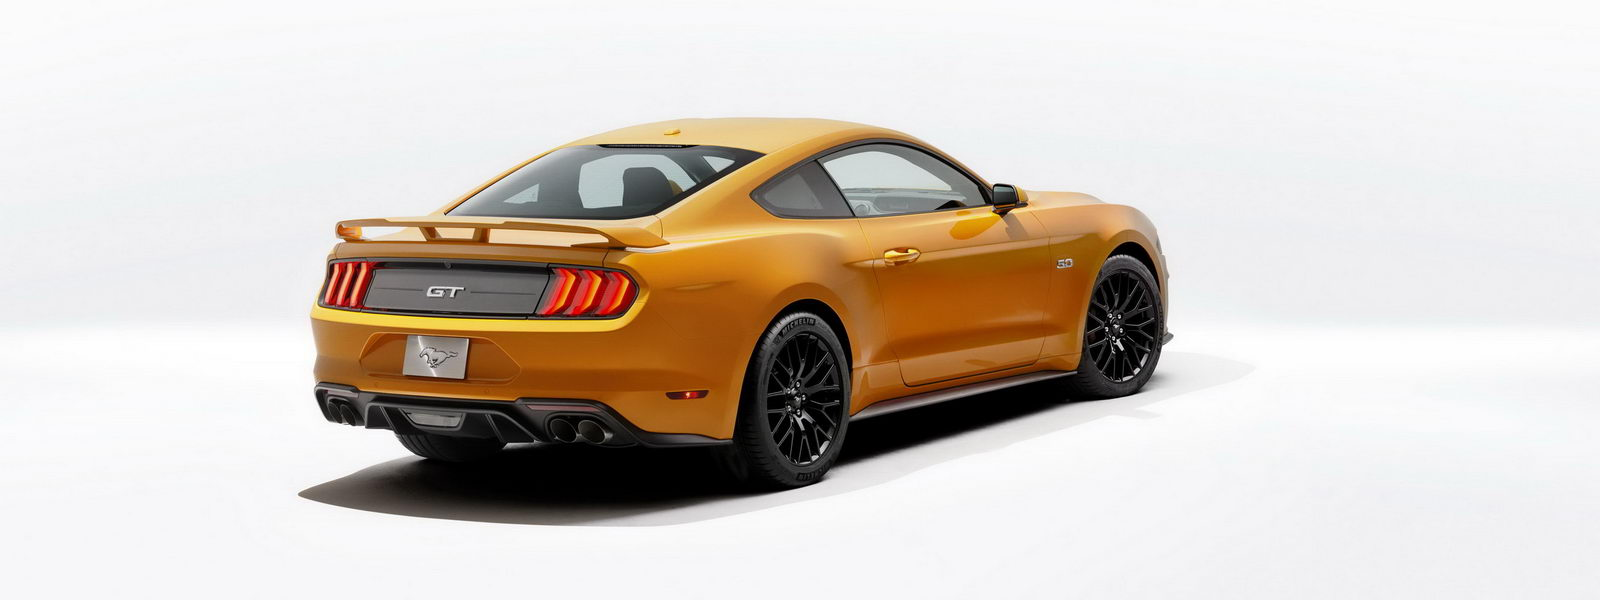 Ford Mustang GT facelift 2018 4